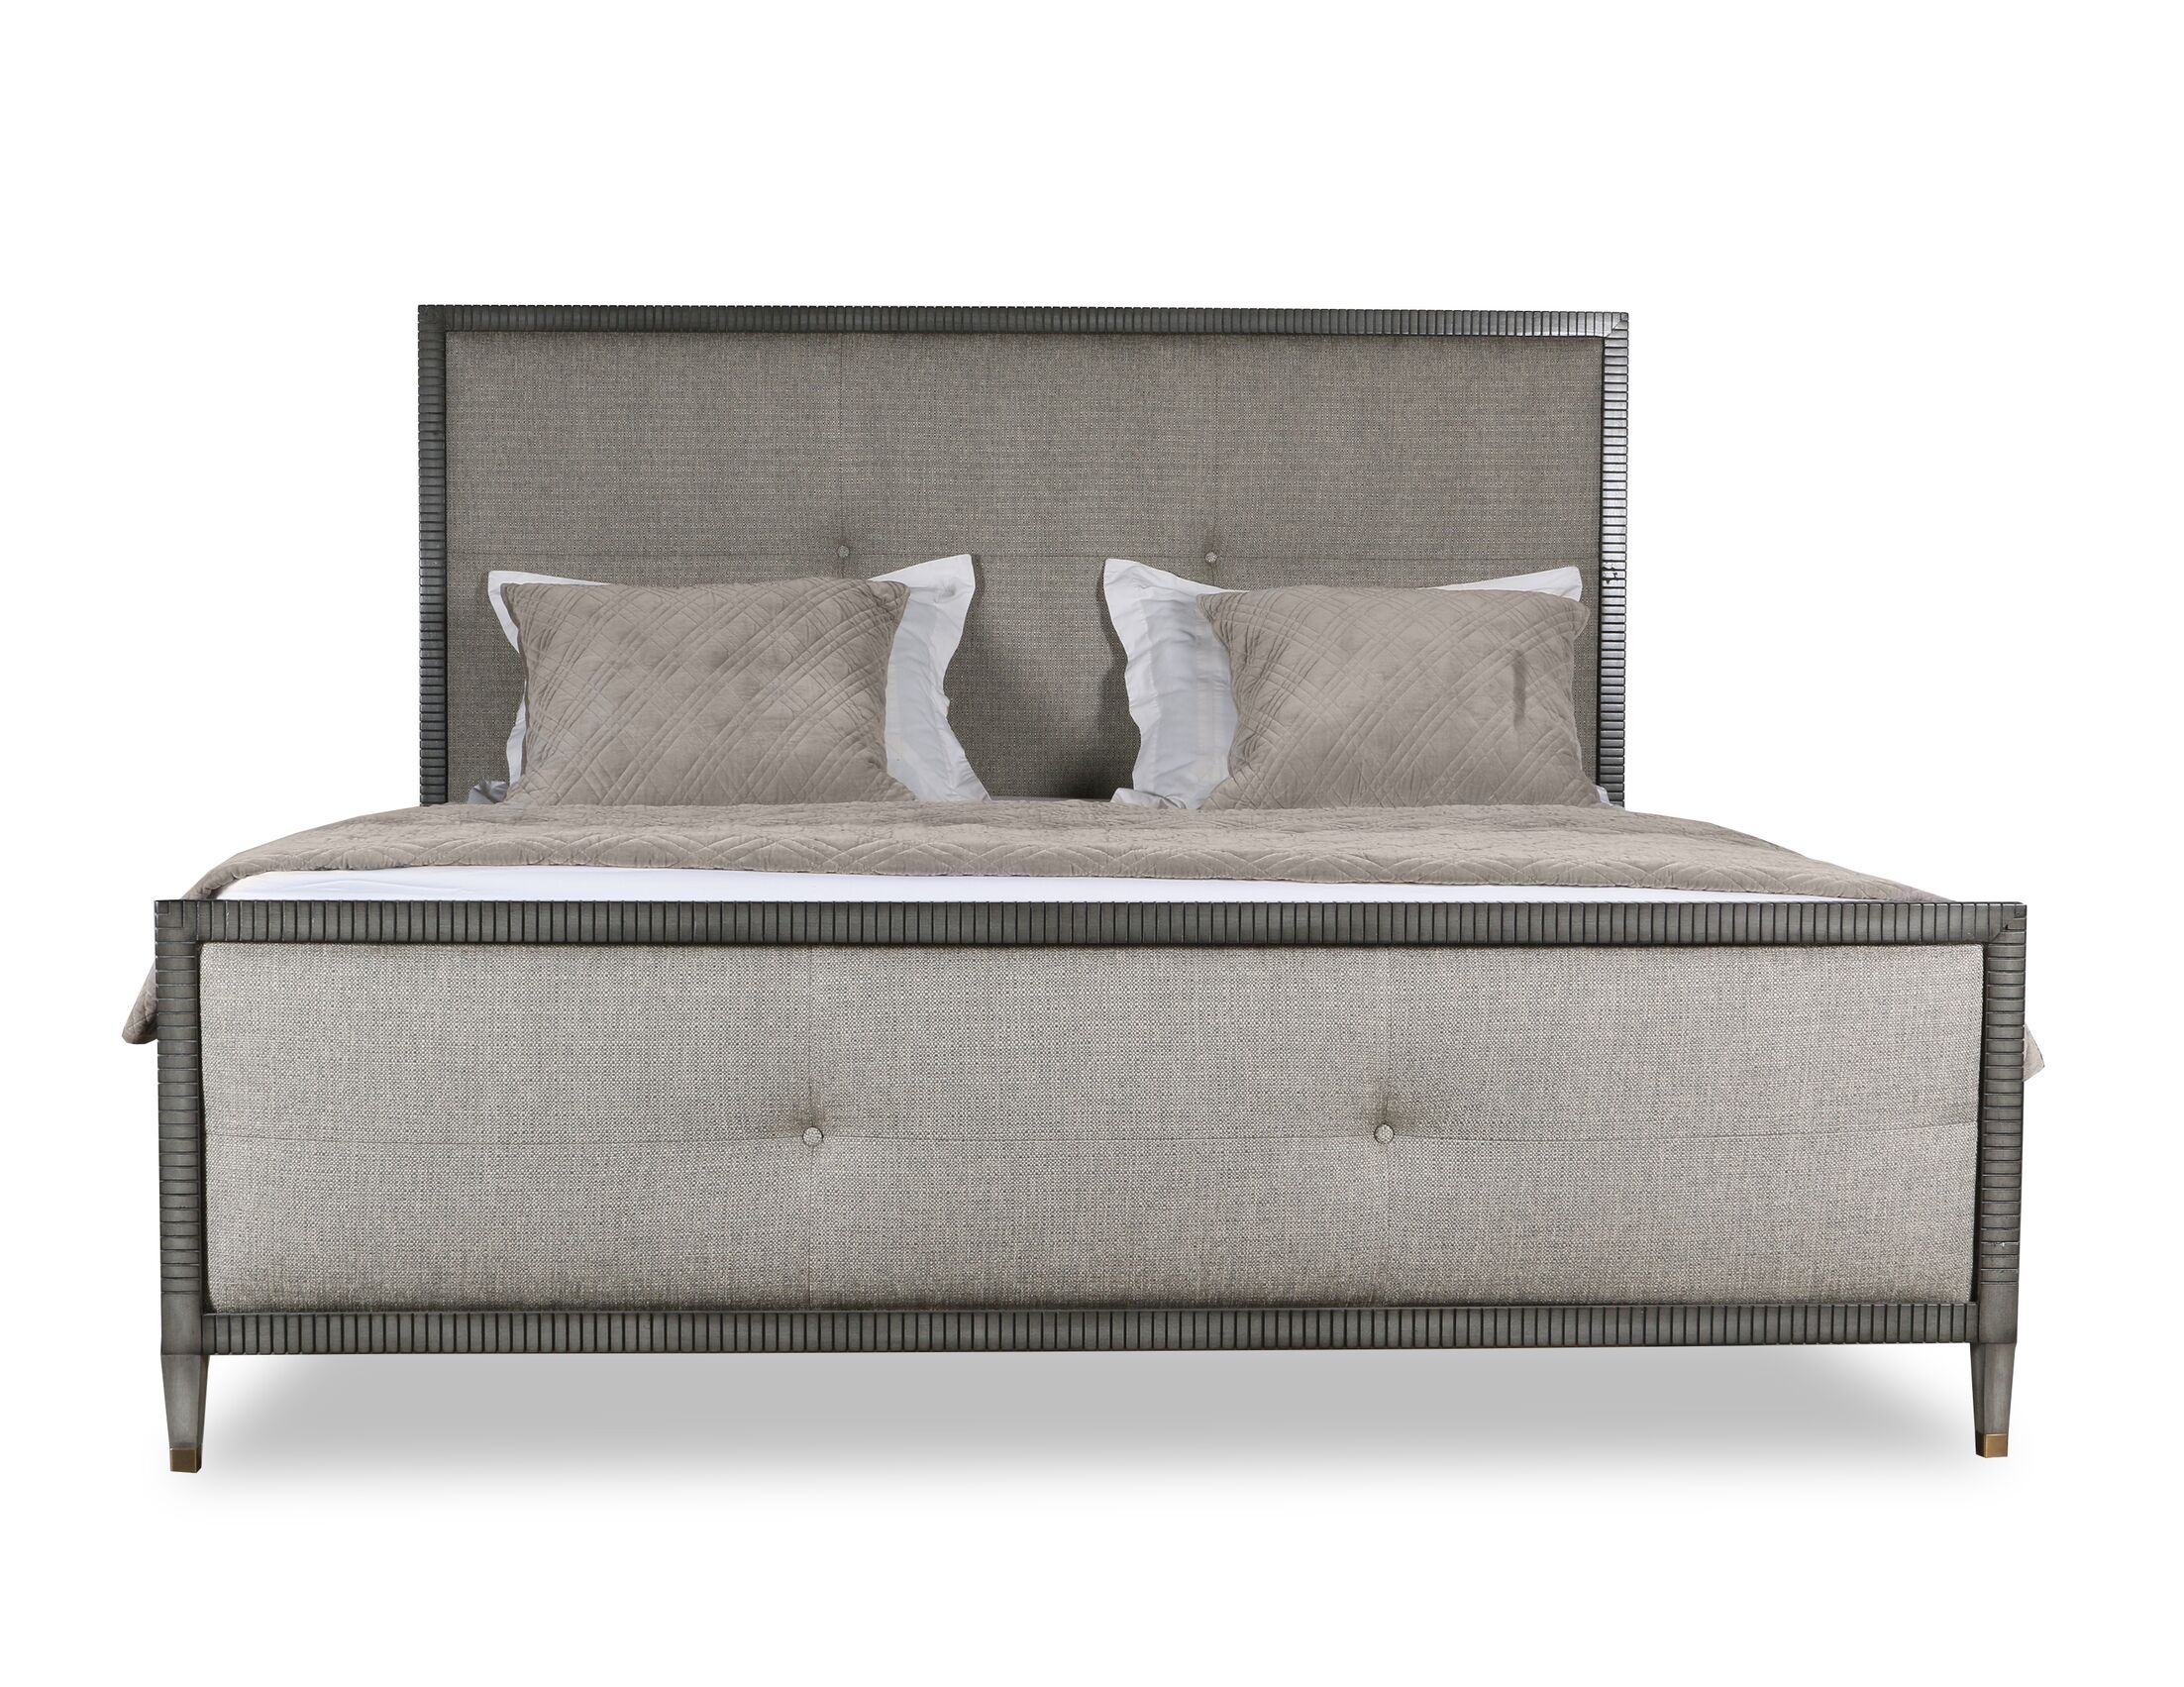 Korhonen Simple Tufted Upholstered Panel Bed Size: California King, Color: Gray